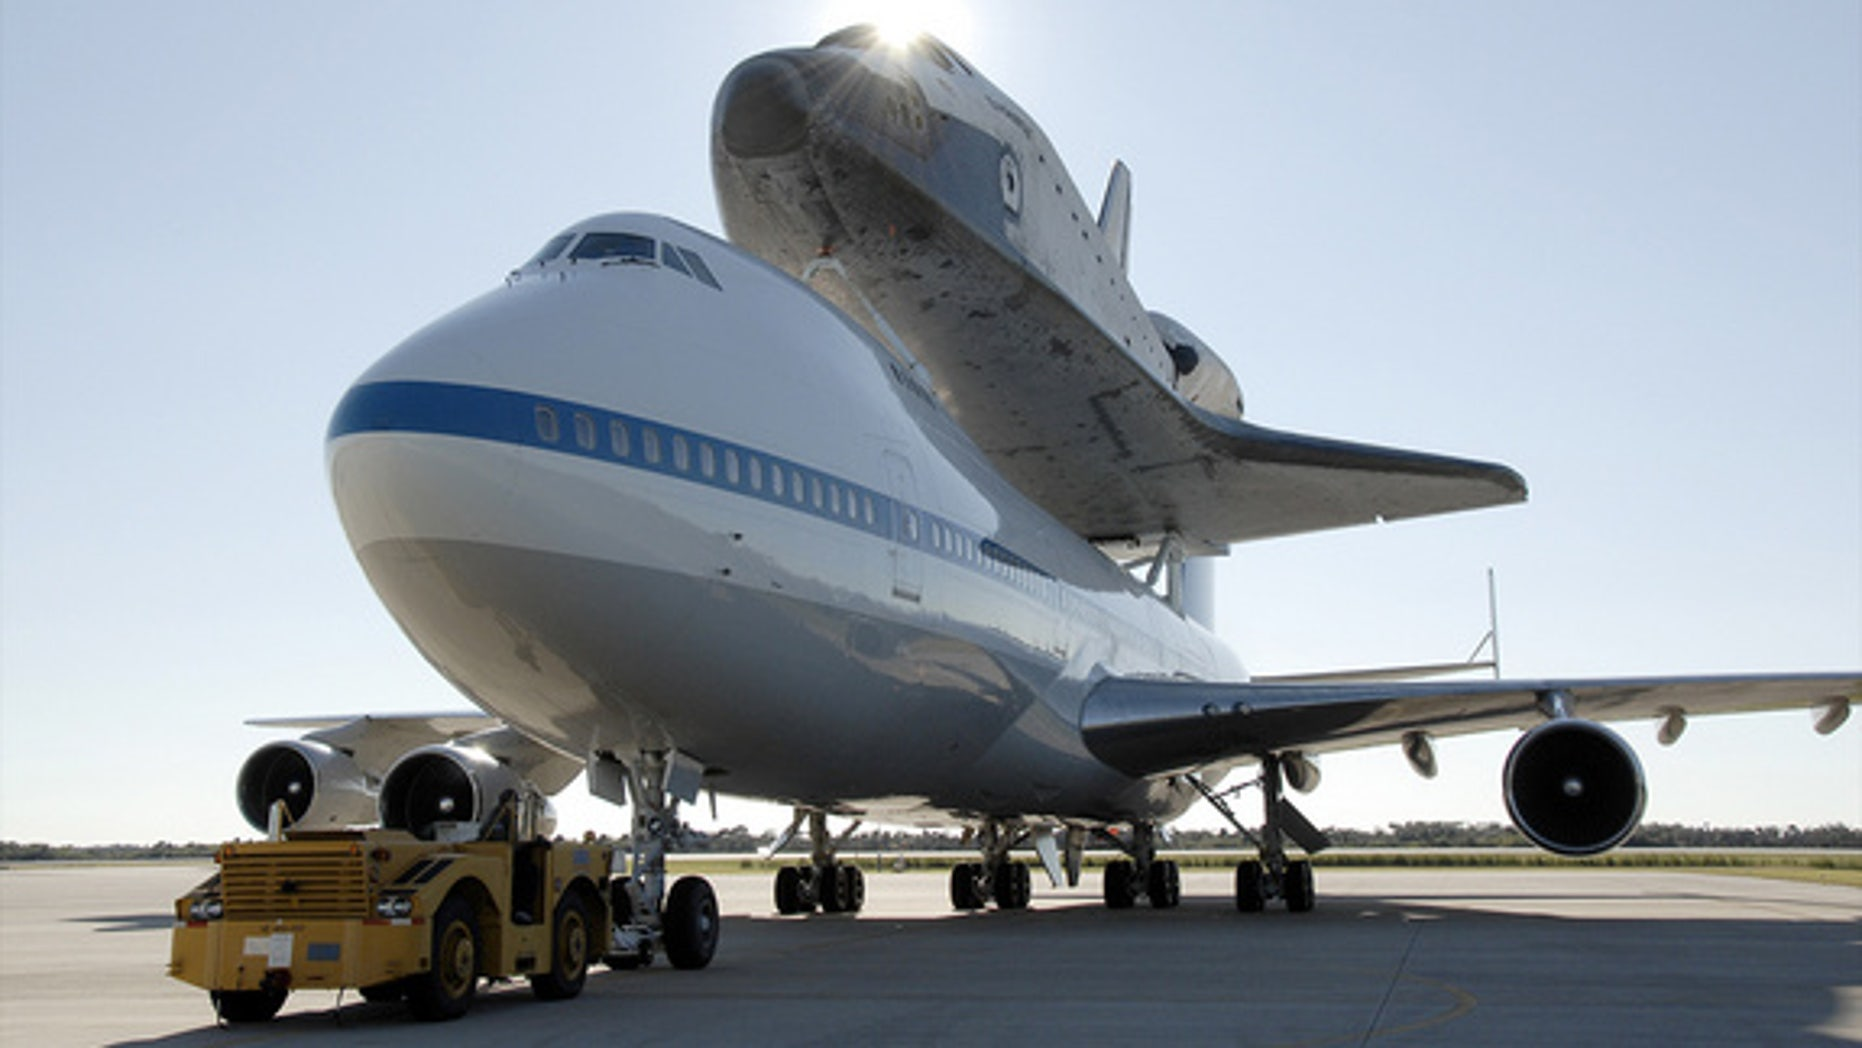 Space shuttle Endeavour, seen here in 2008 atop NASA's Boeing 747 carrier aircraft, will arrive in Los Angeles on Sept. 2012, for delivery to the California Science Center.